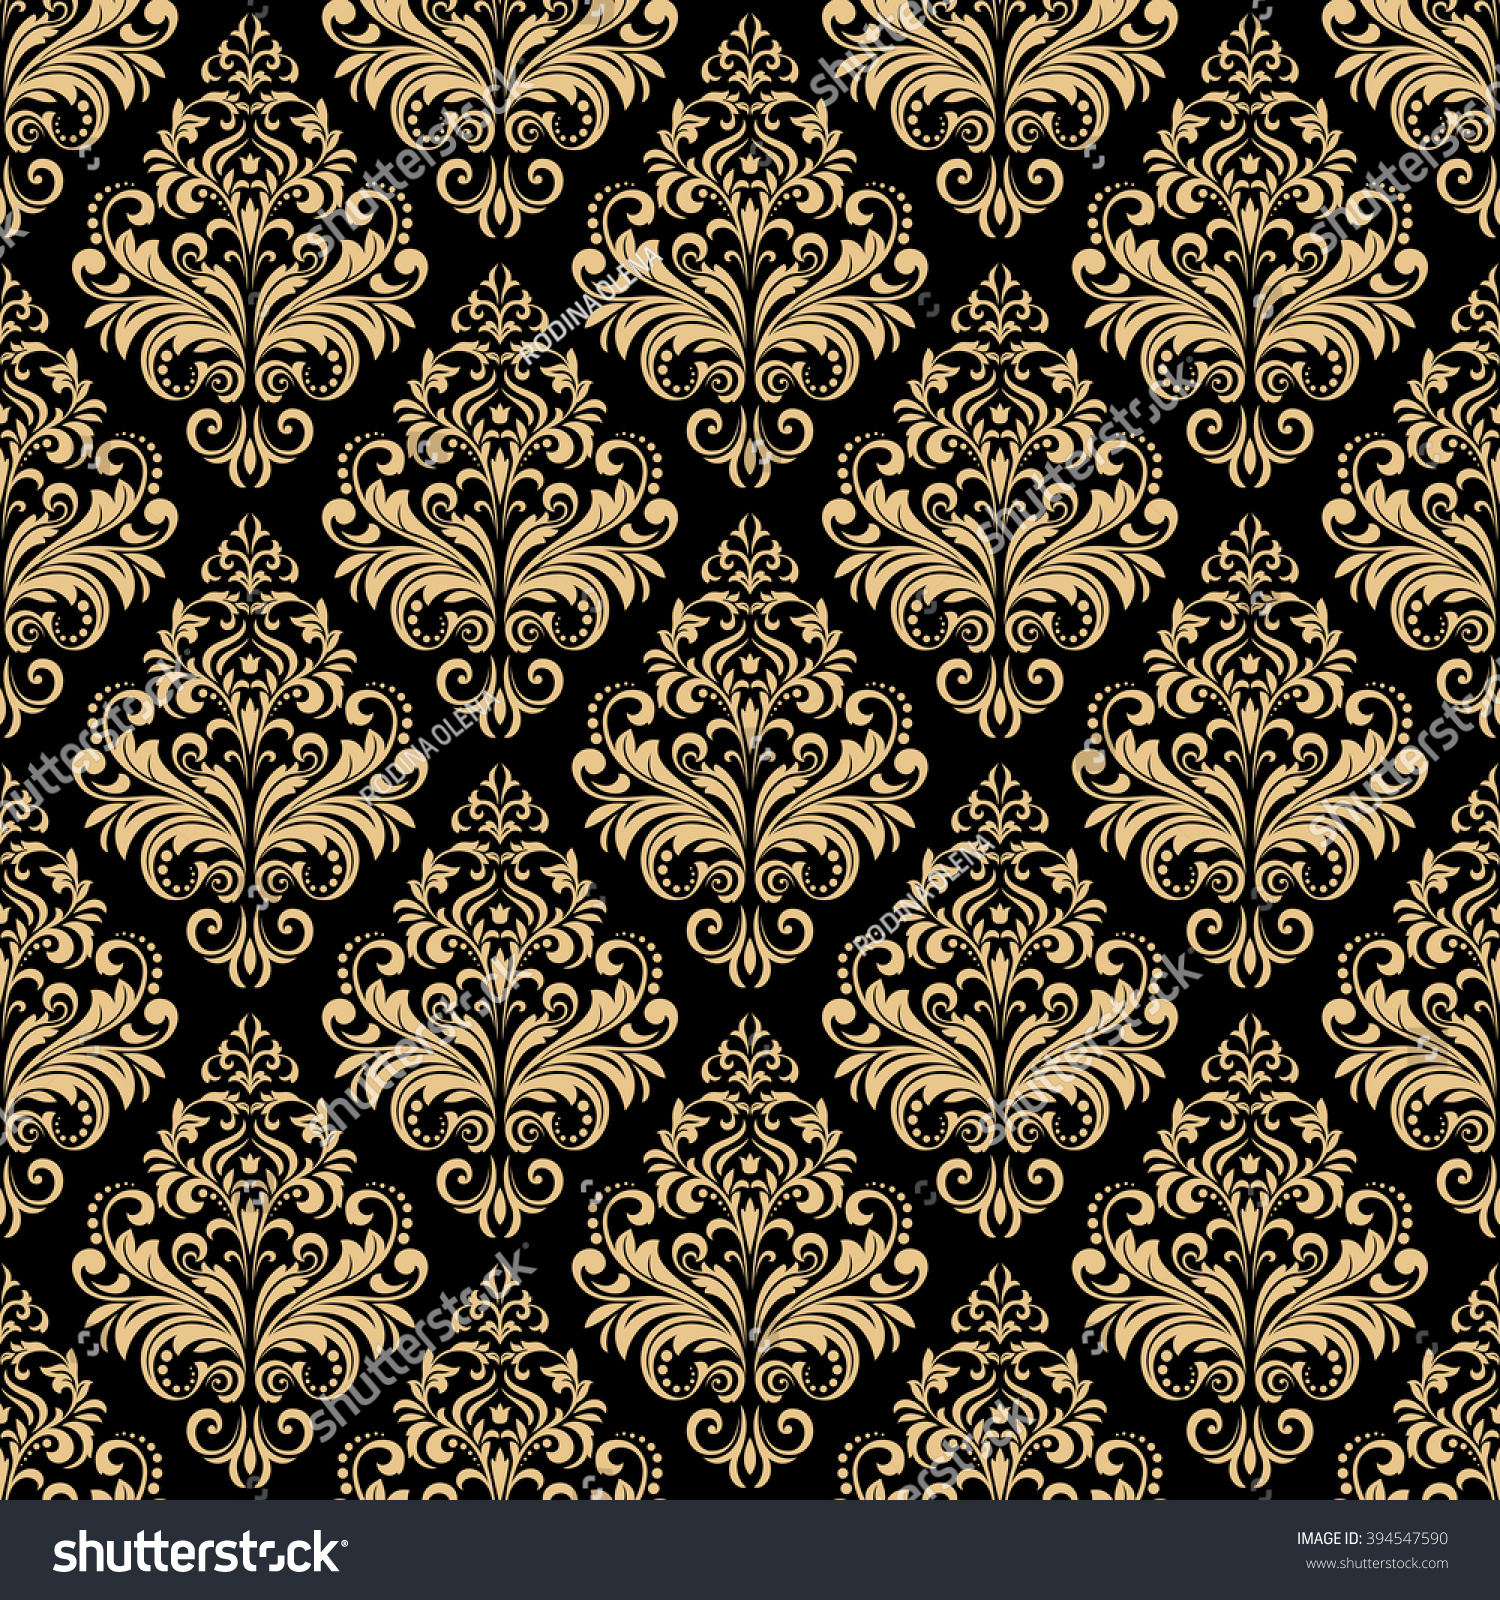 Wallpaper Baroque Damask Seamless Vector Background Gold And Black Ornament